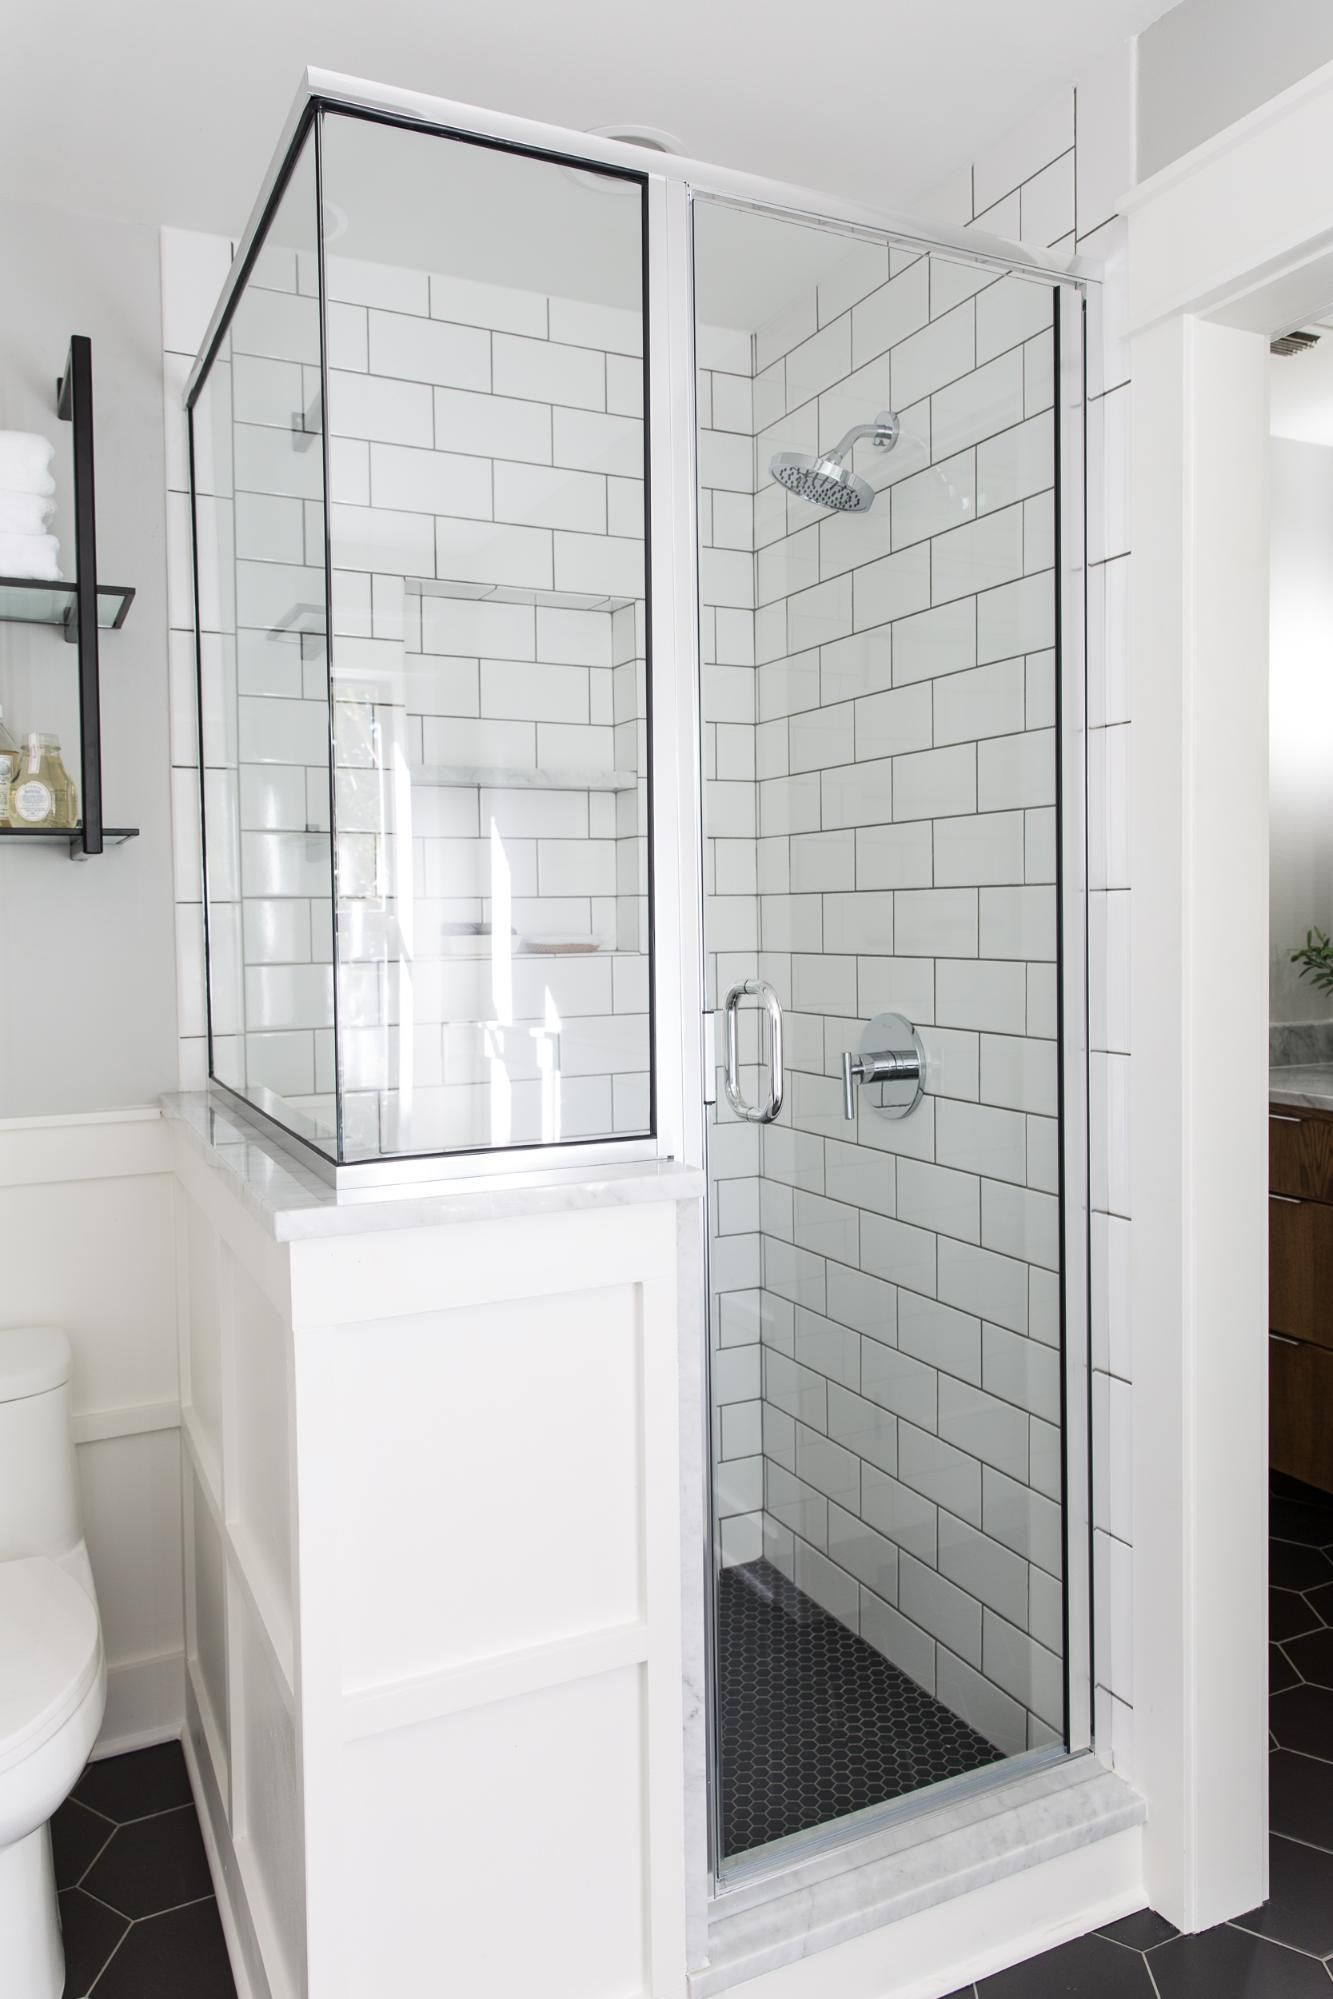 A Master Bathroom Renovation | Custom shower, Oil rubbed bronze and Pony